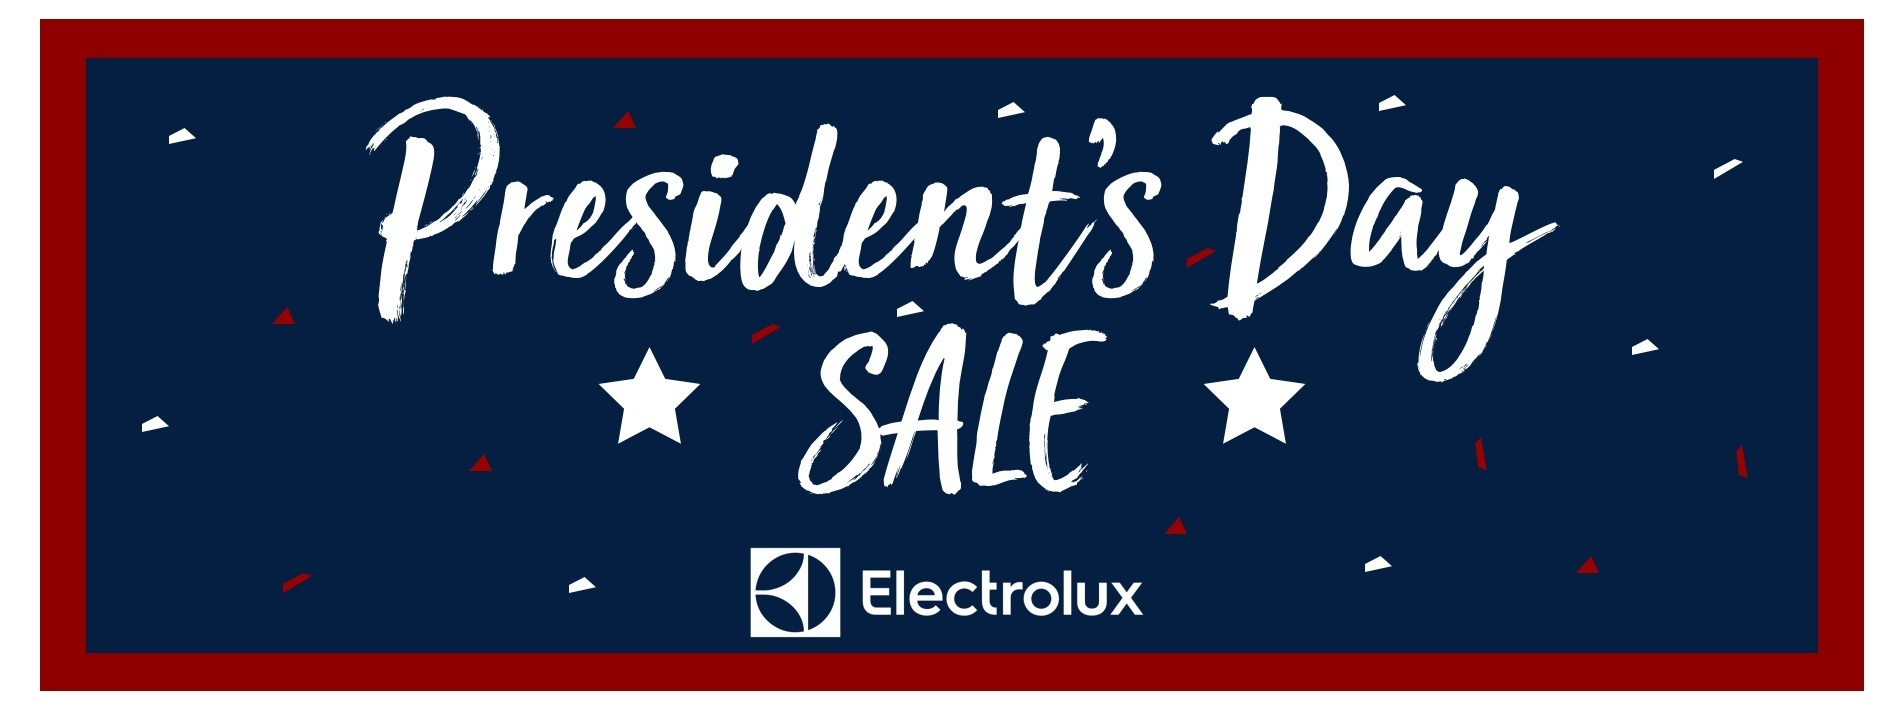 Electrolux-Presidents-Day-2021